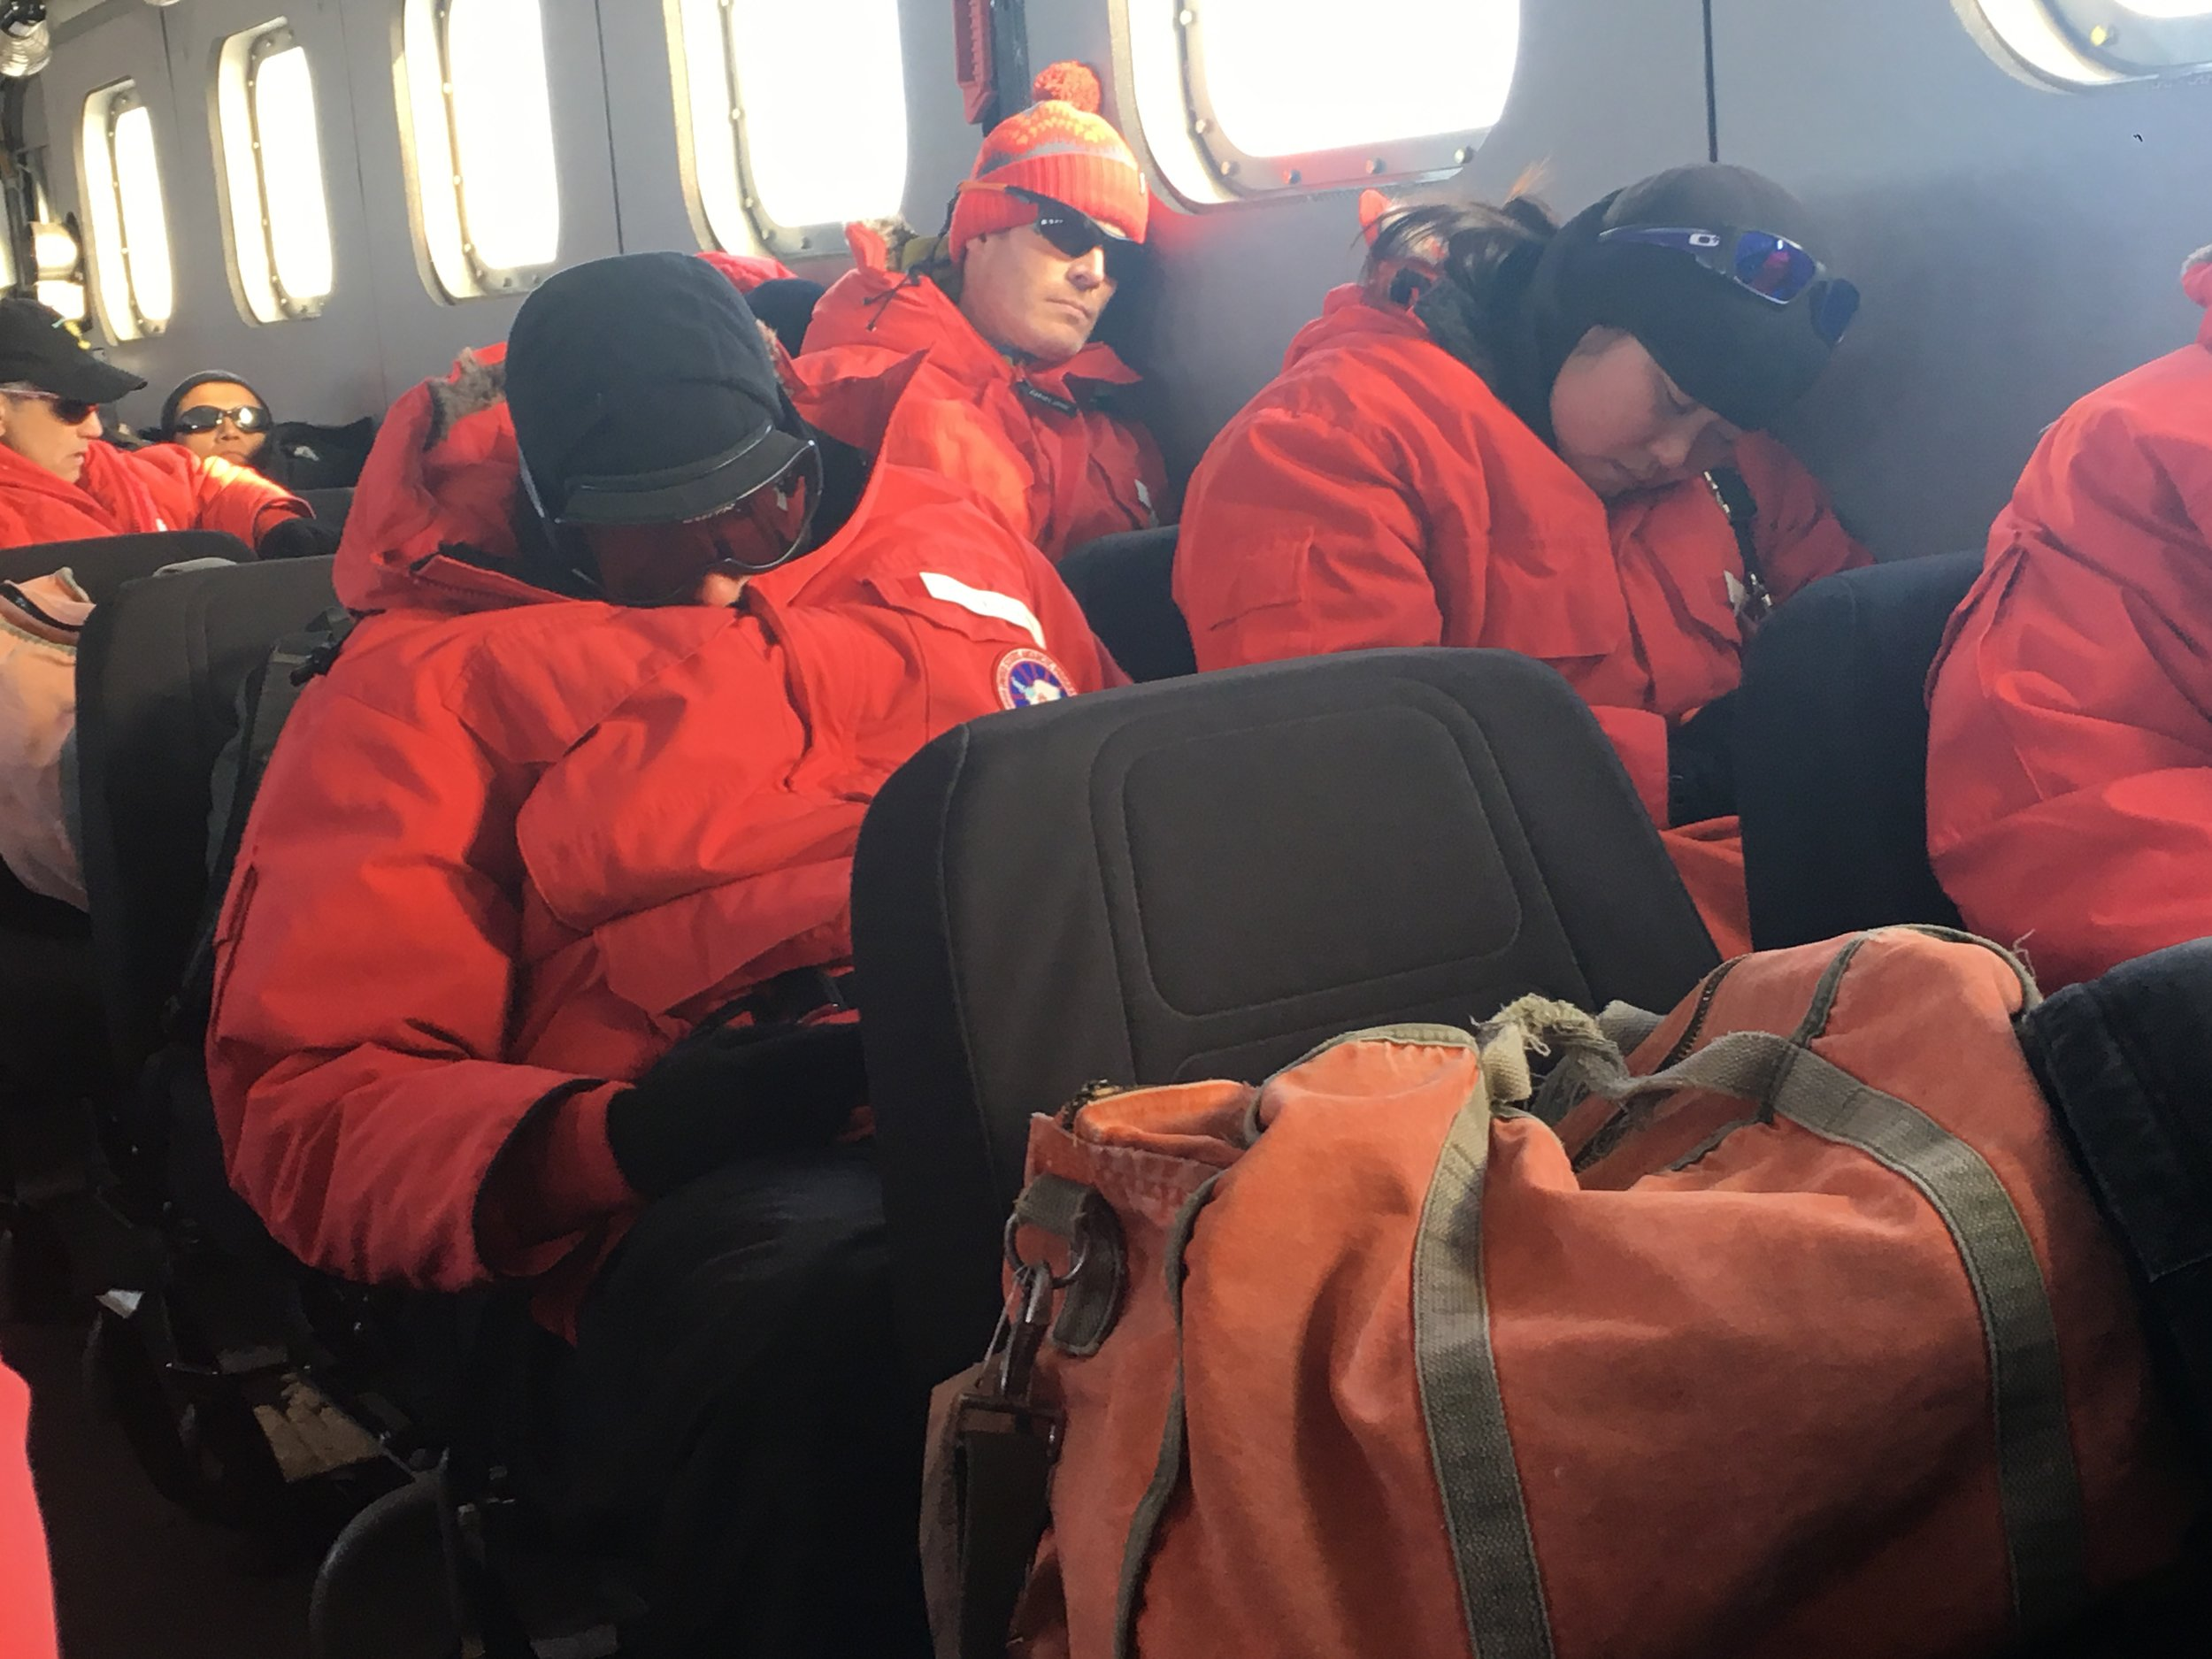 Caitlin and Steve getting some shuteye in the Kress ride from the airfield to McMurdo Station, in preparation for a grueling season!